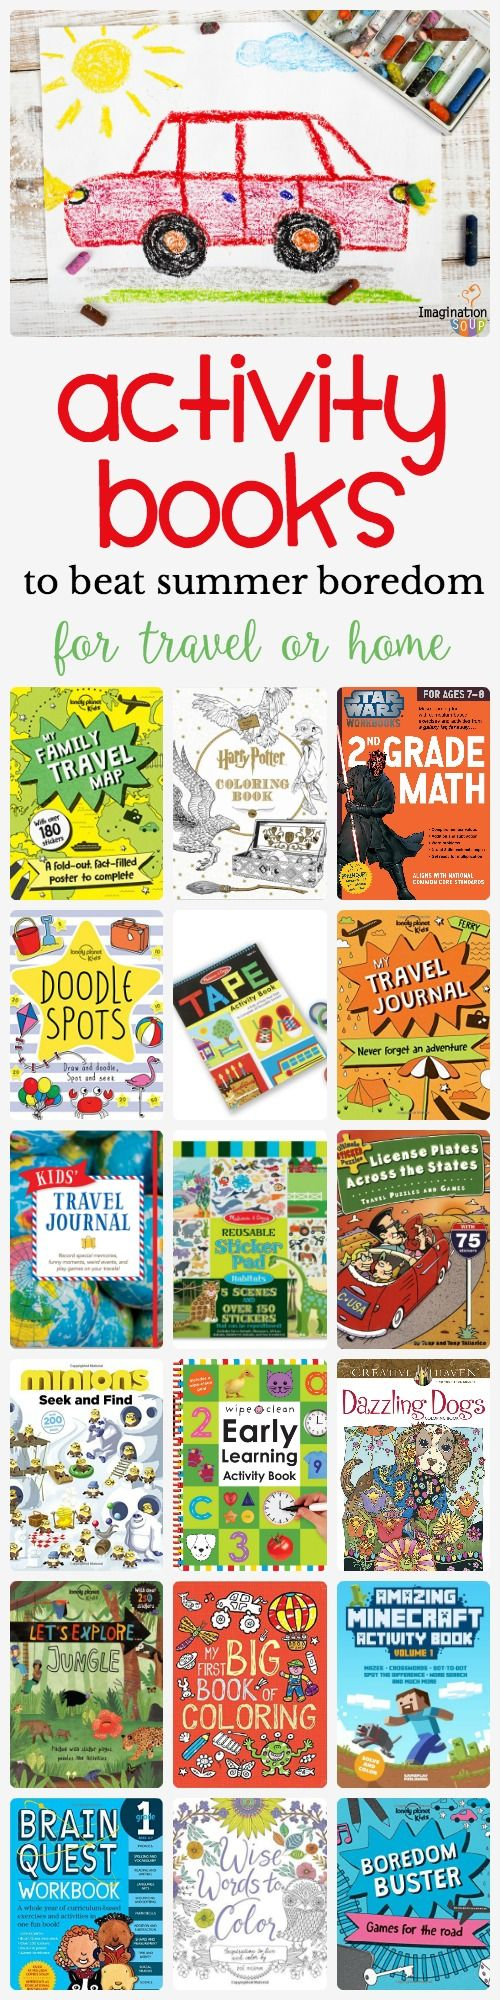 Childrens educational coloring activity book - Coloring Activity And Travel Books For Kids